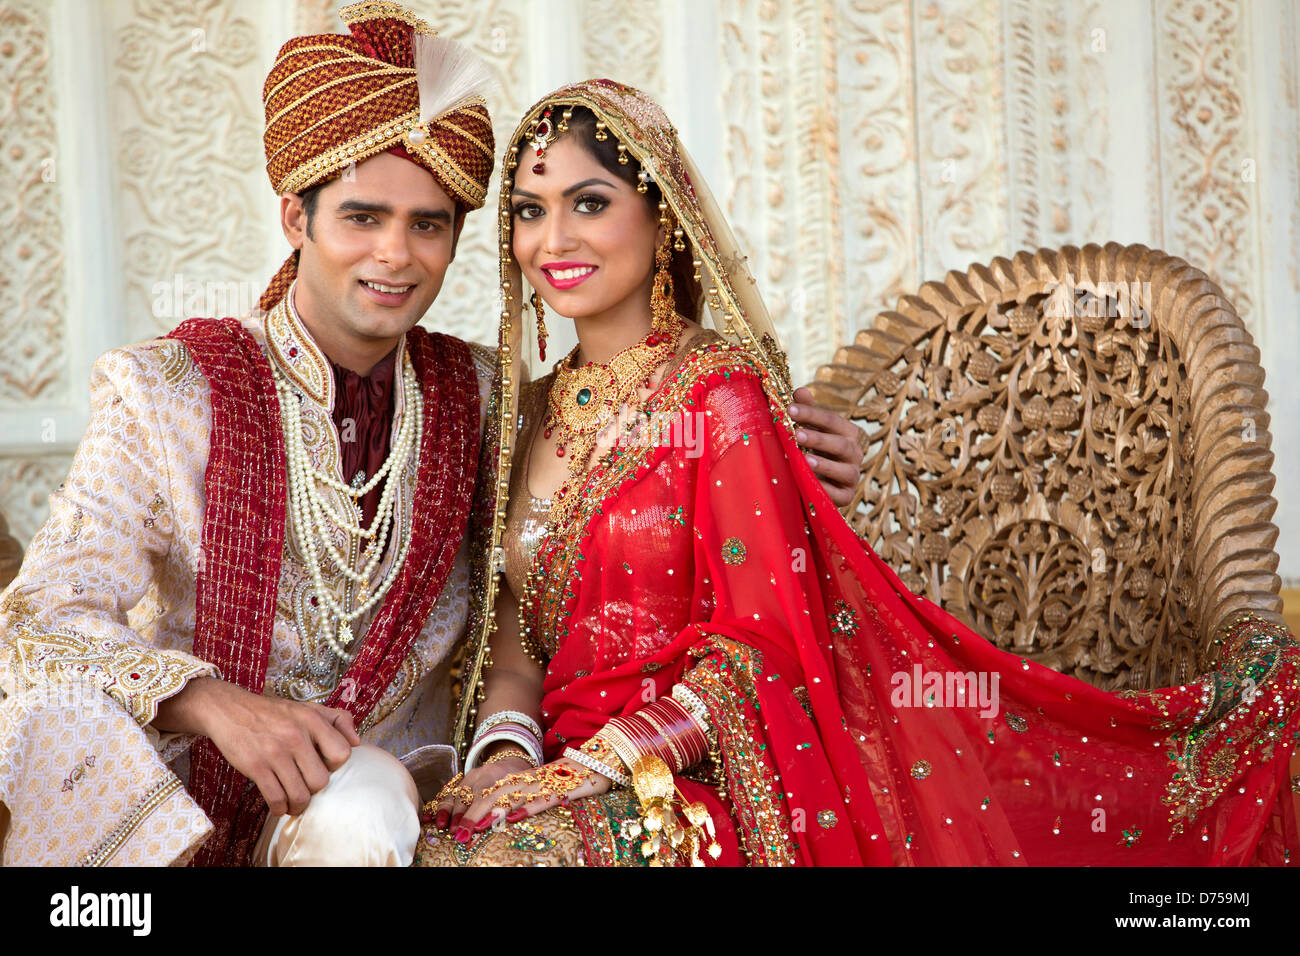 Indian Bride And Groom In Traditional Wedding Dress Sitting On A Stock Photo Royalty Free Image